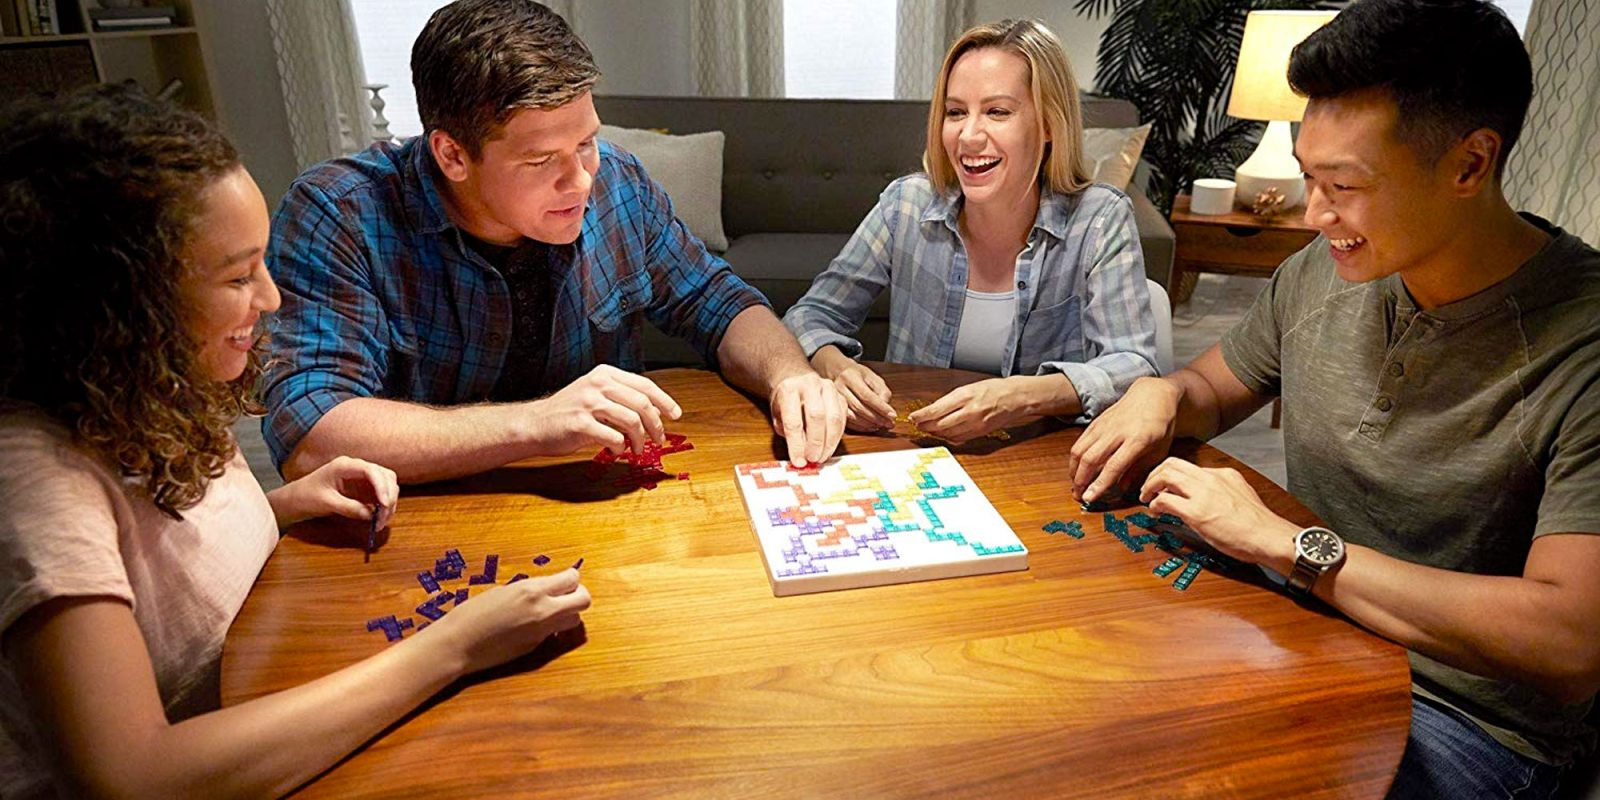 Take family game night to new heights with Blokus, now just $10 at Amazon